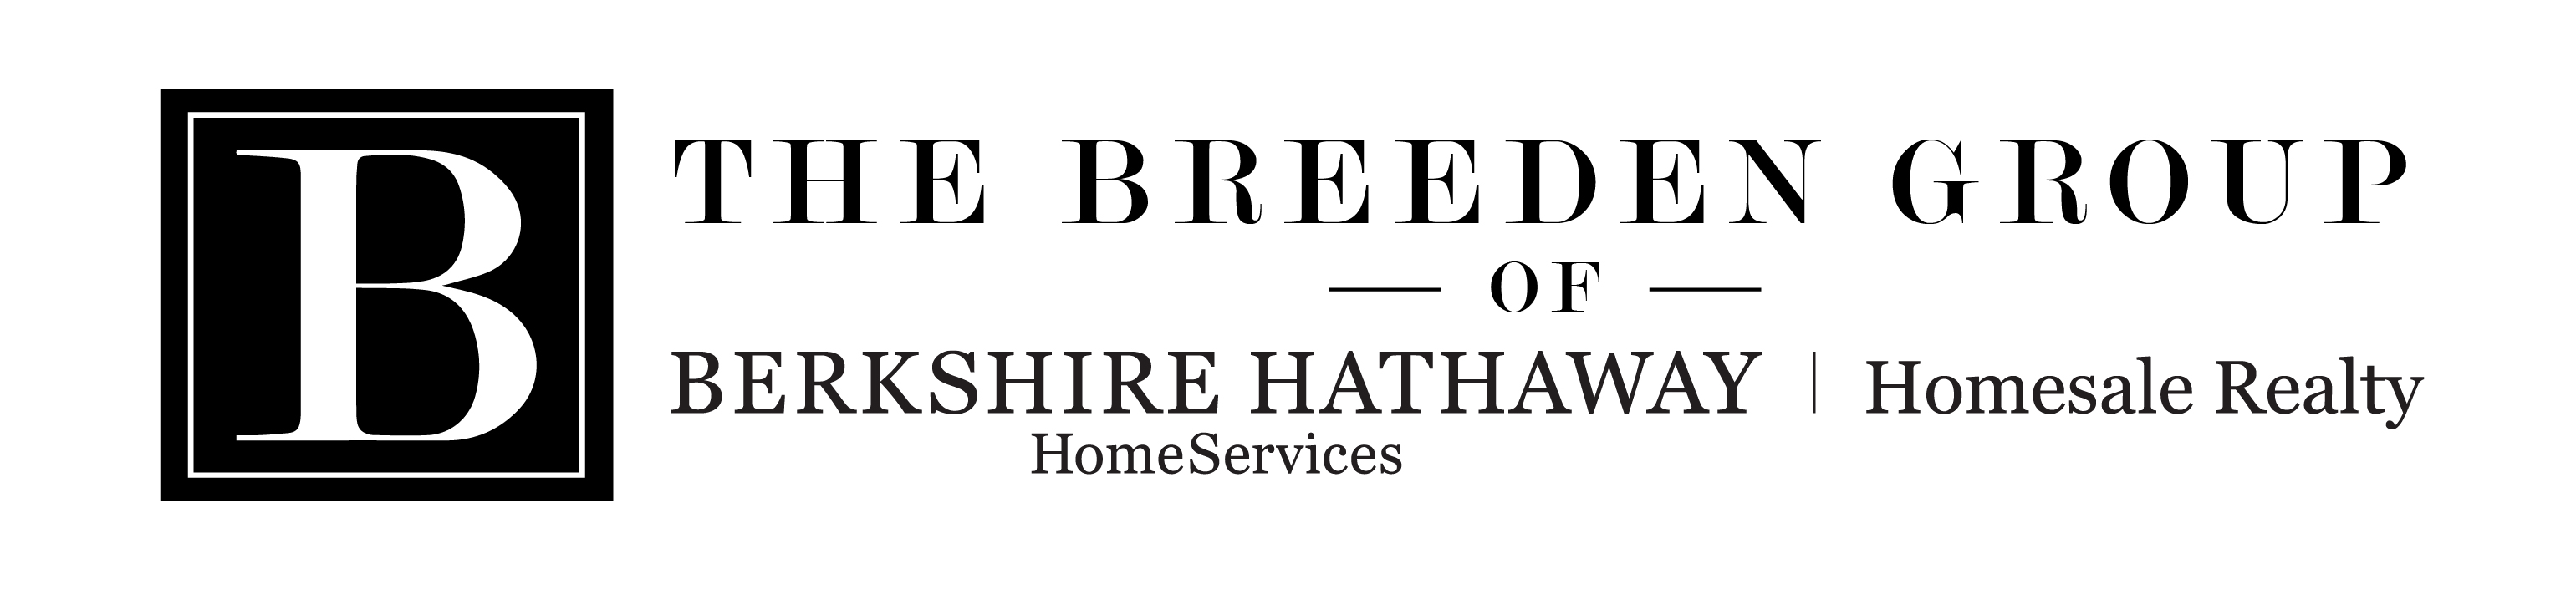 The Breeden Group Of Berkshire Hathaway